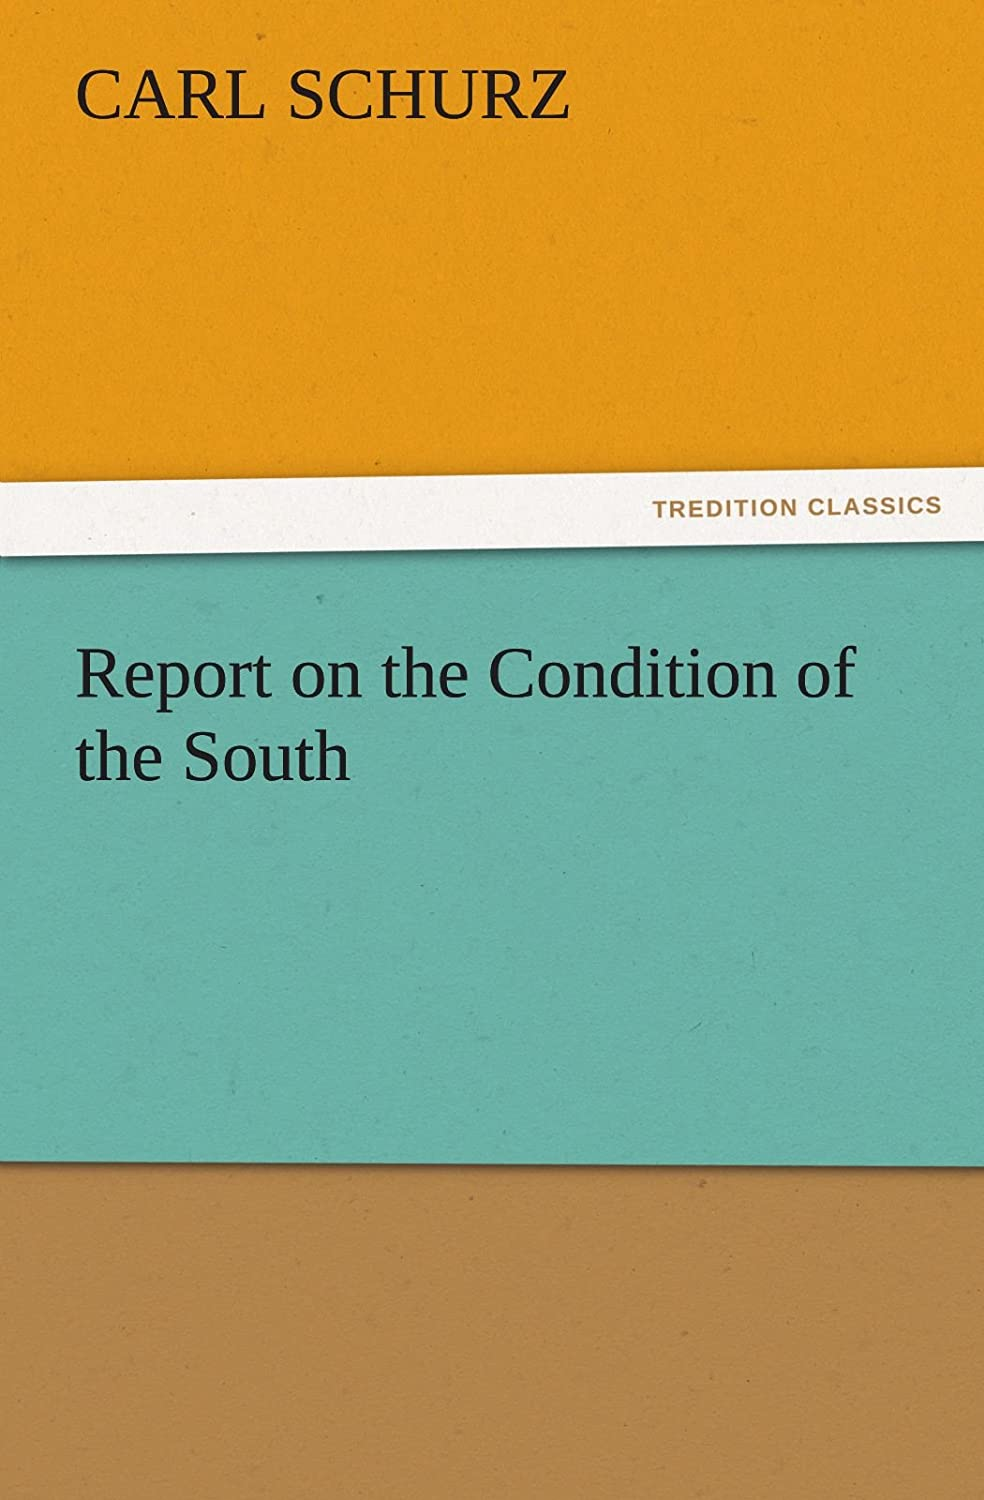 Mon premier blog page 3 report on the condition of the south tredition classics carl schurz fandeluxe Gallery